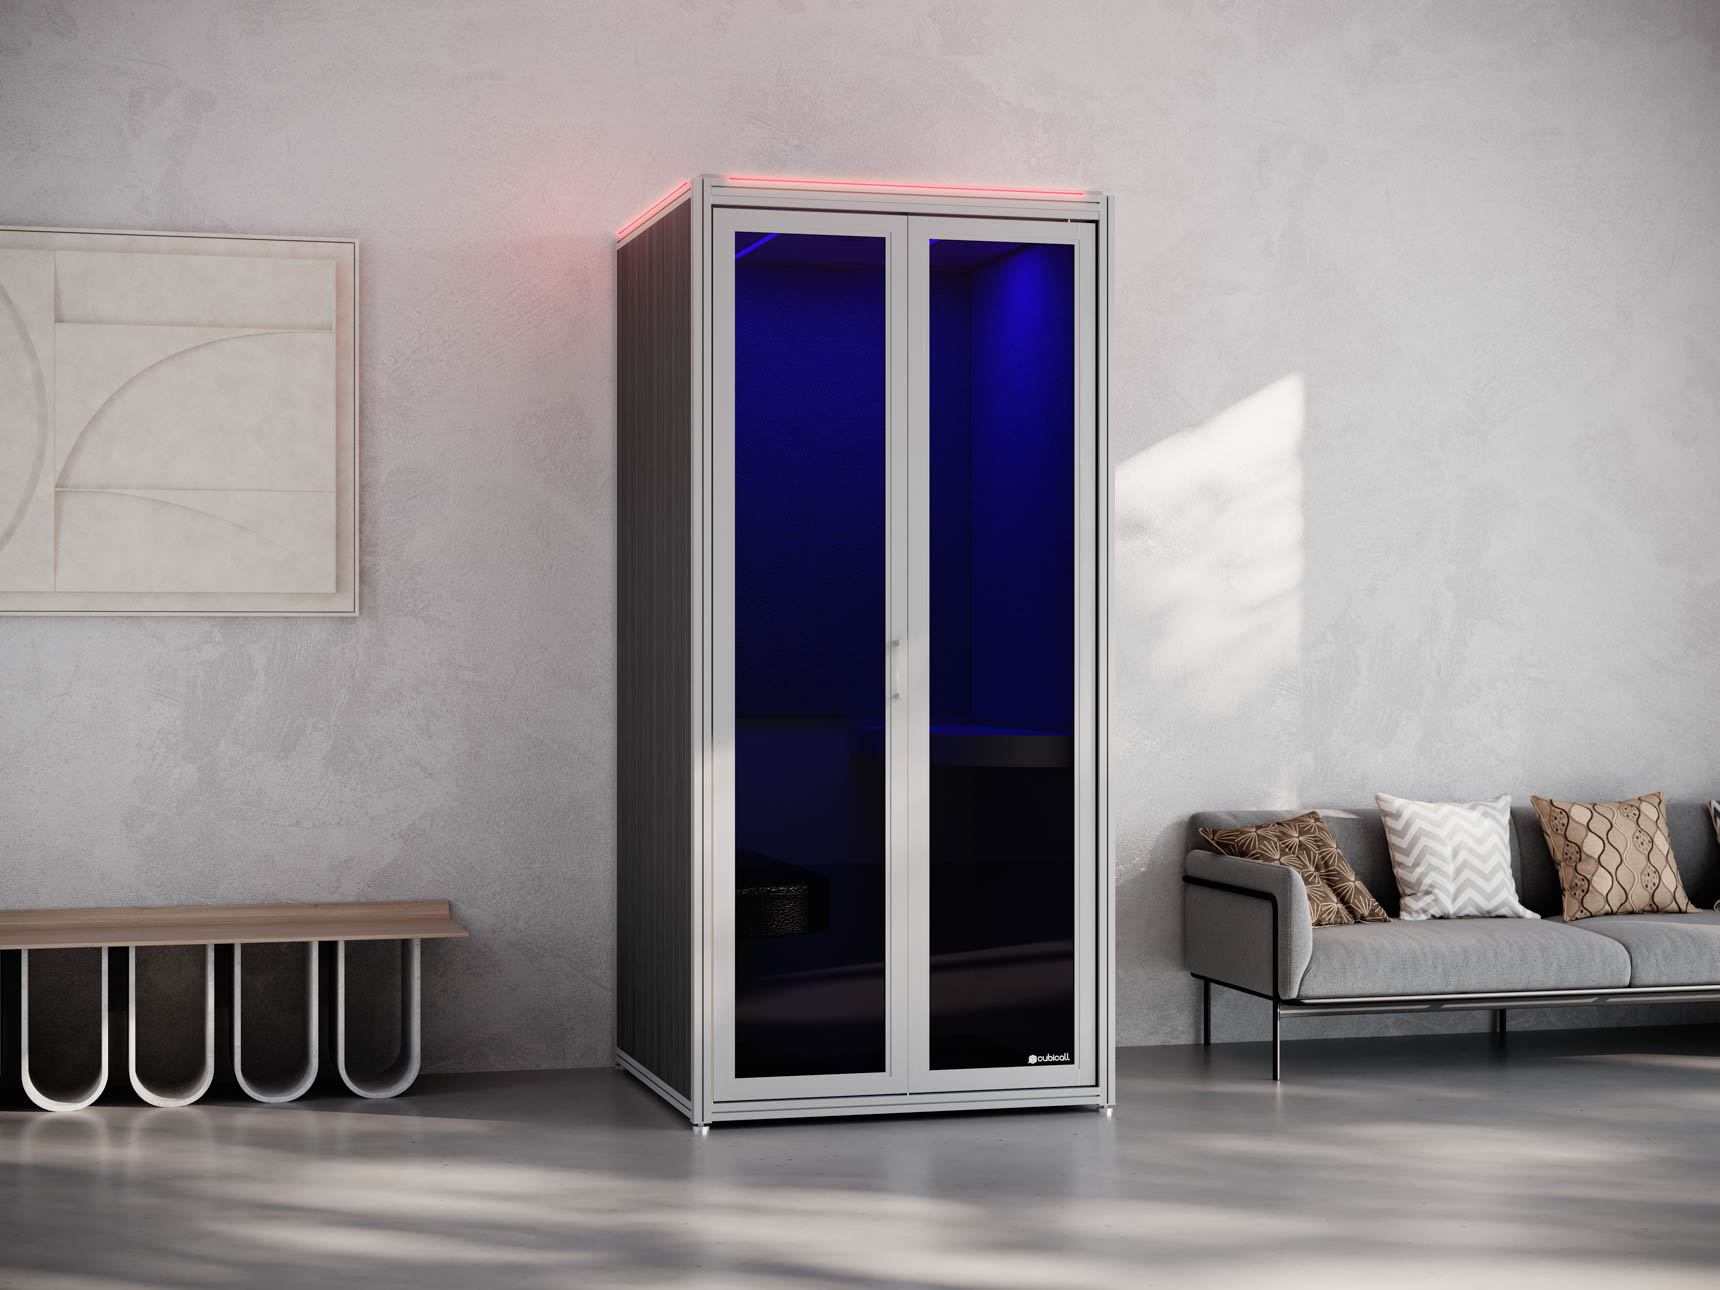 UV Phone Booth for After-use Disinfection